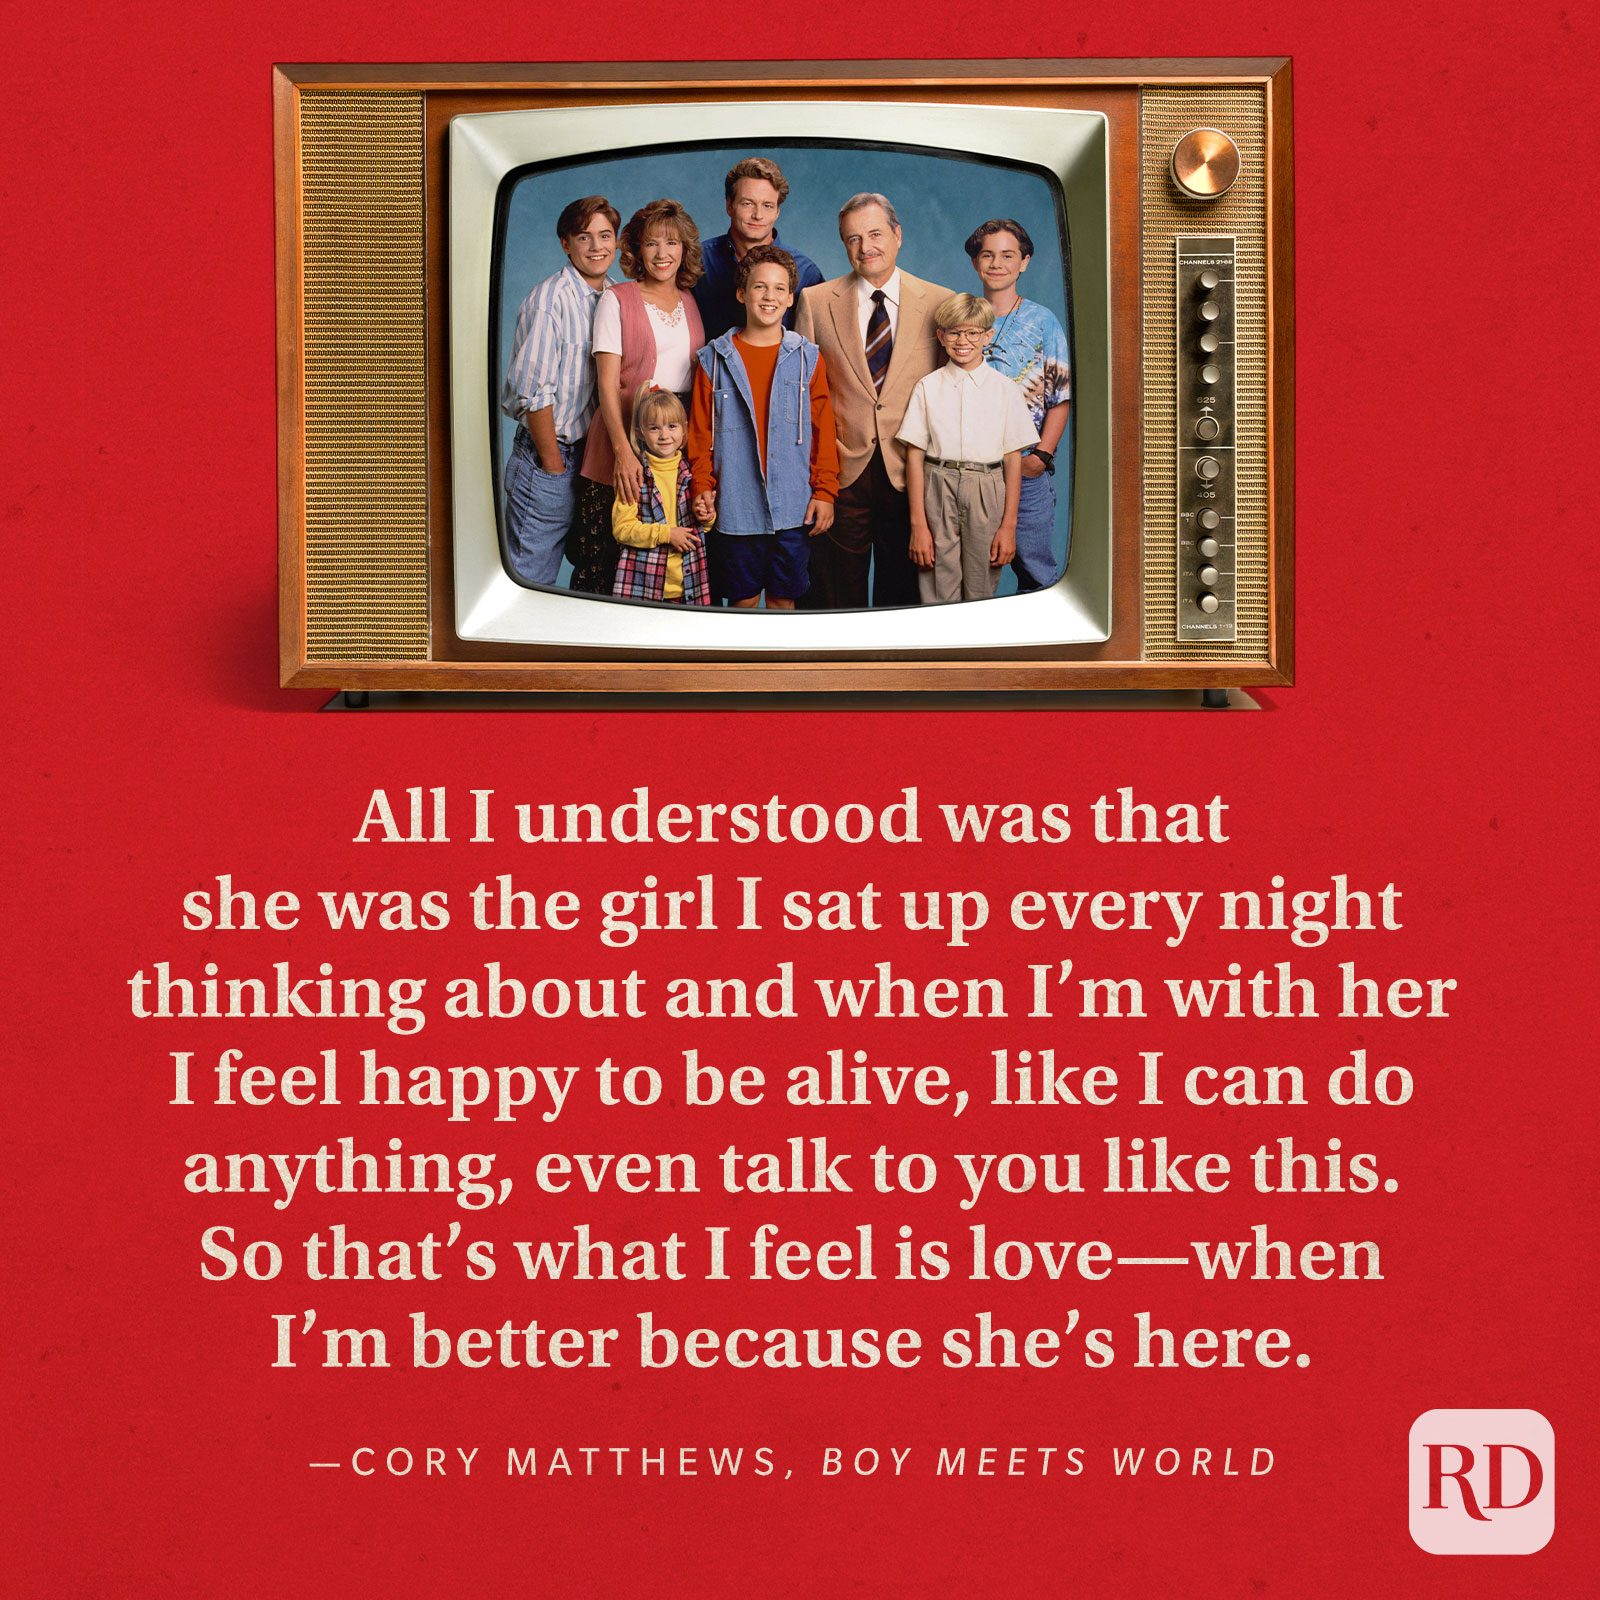 """""""All I understood was that she was the girl I sat up every night thinking about and when I'm with her I feel happy to be alive, like I can do anything, even talk to you like this. So that's what I feel is love—when I'm better because she's here."""" —Cory Matthews inBoy Meets World."""